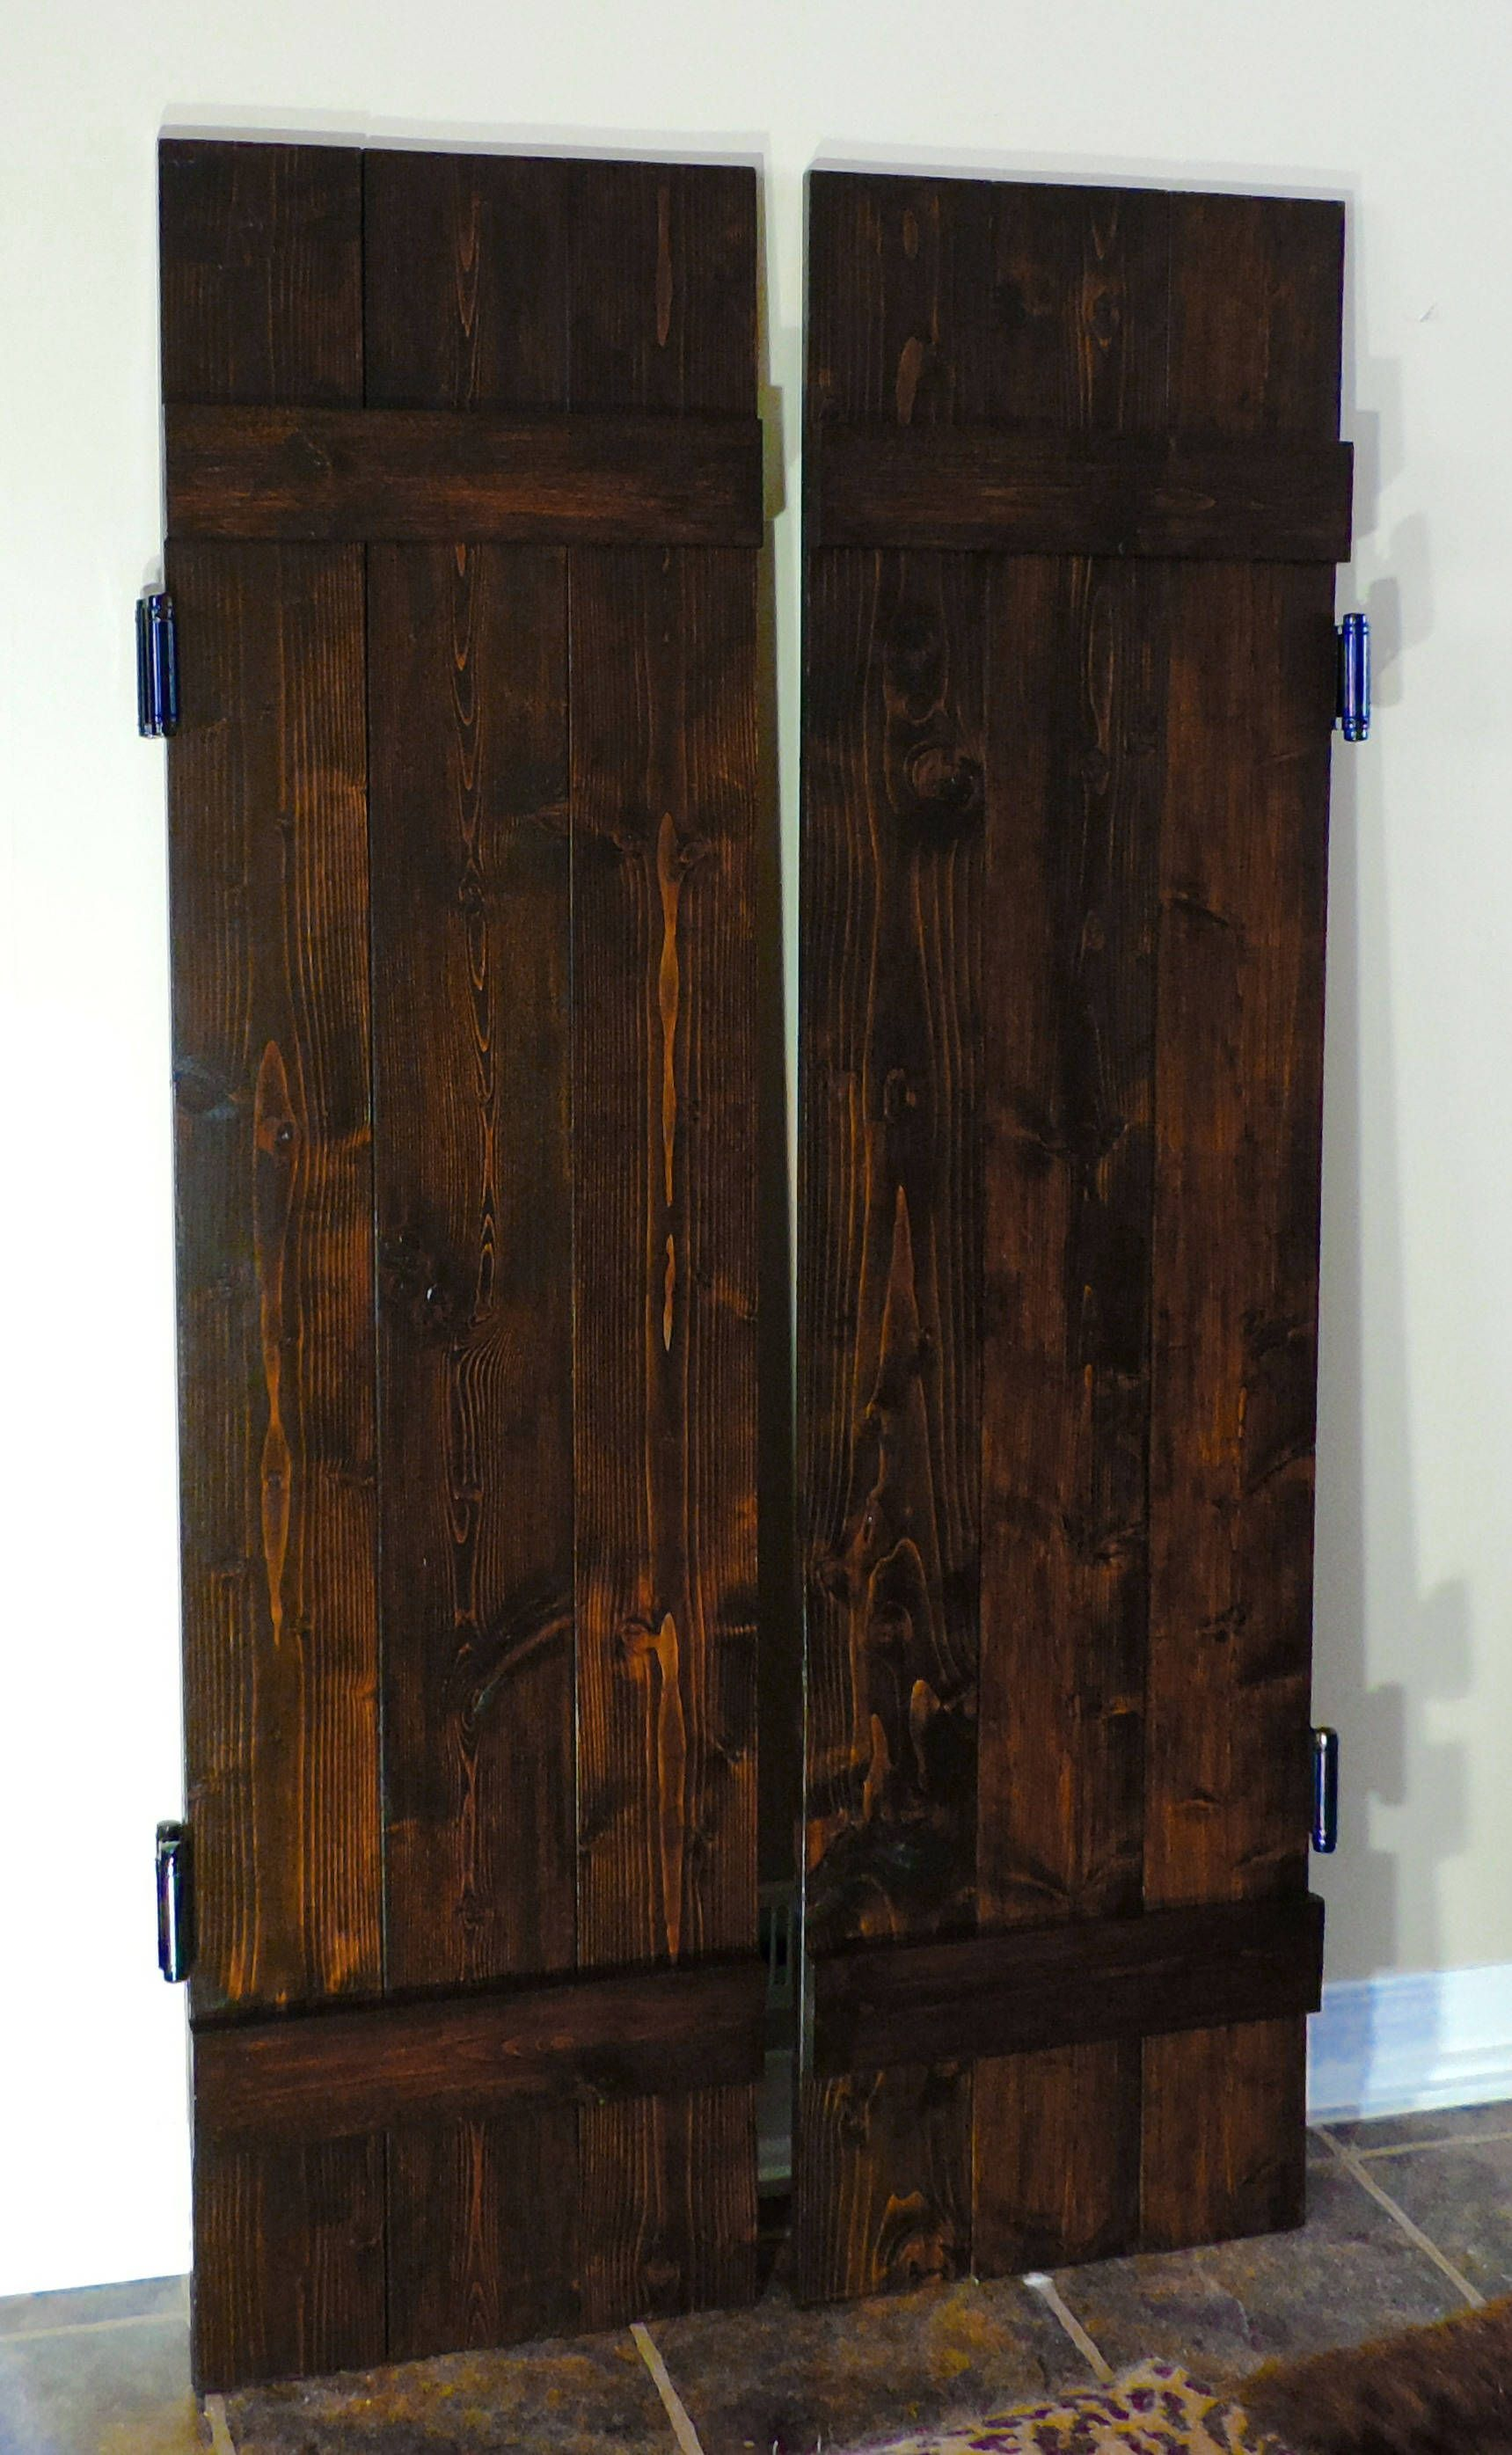 Saloon Doors Rustic Doors Southwestern Decor Interior Wood